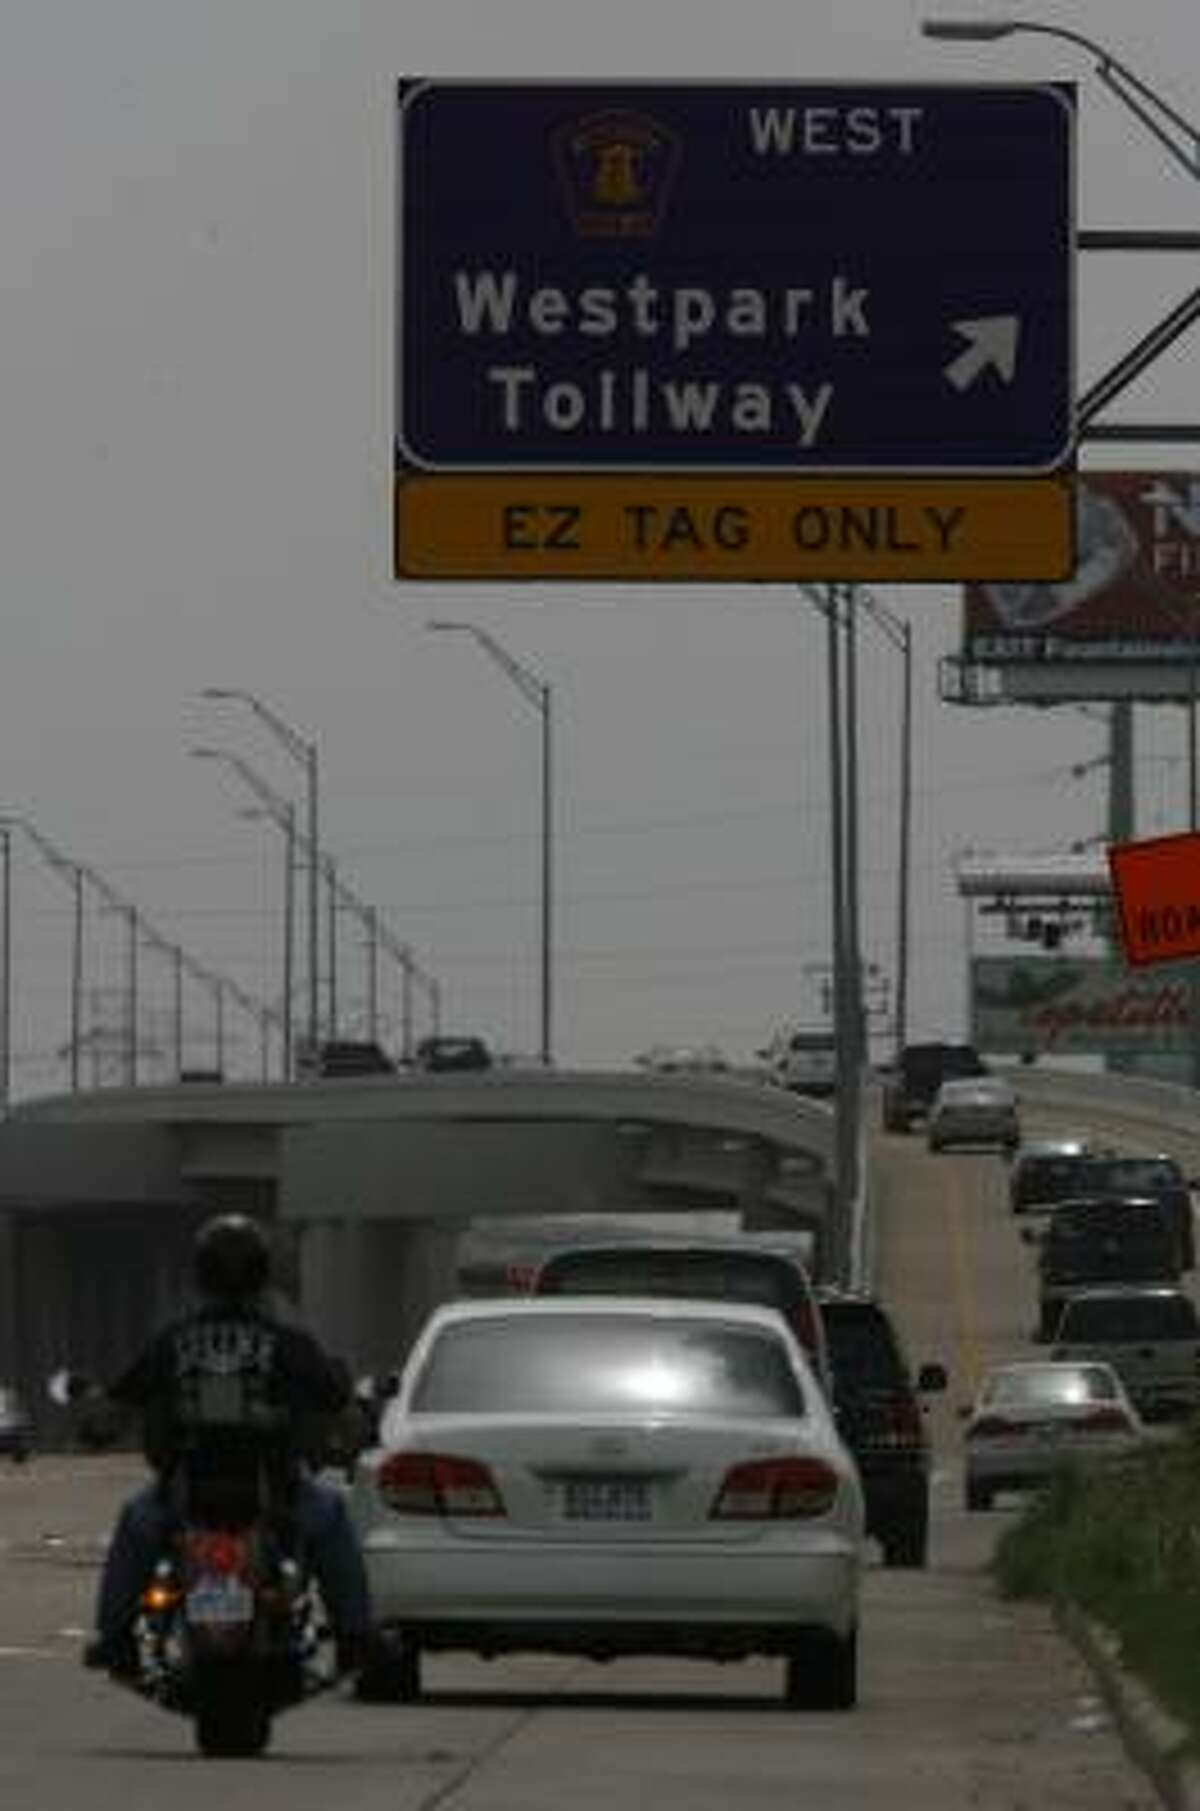 It now costs $2.35 to drive the 14 miles of the Westpark Tollway in Harris County. The price would have gone up to $5.50 during peak hours.